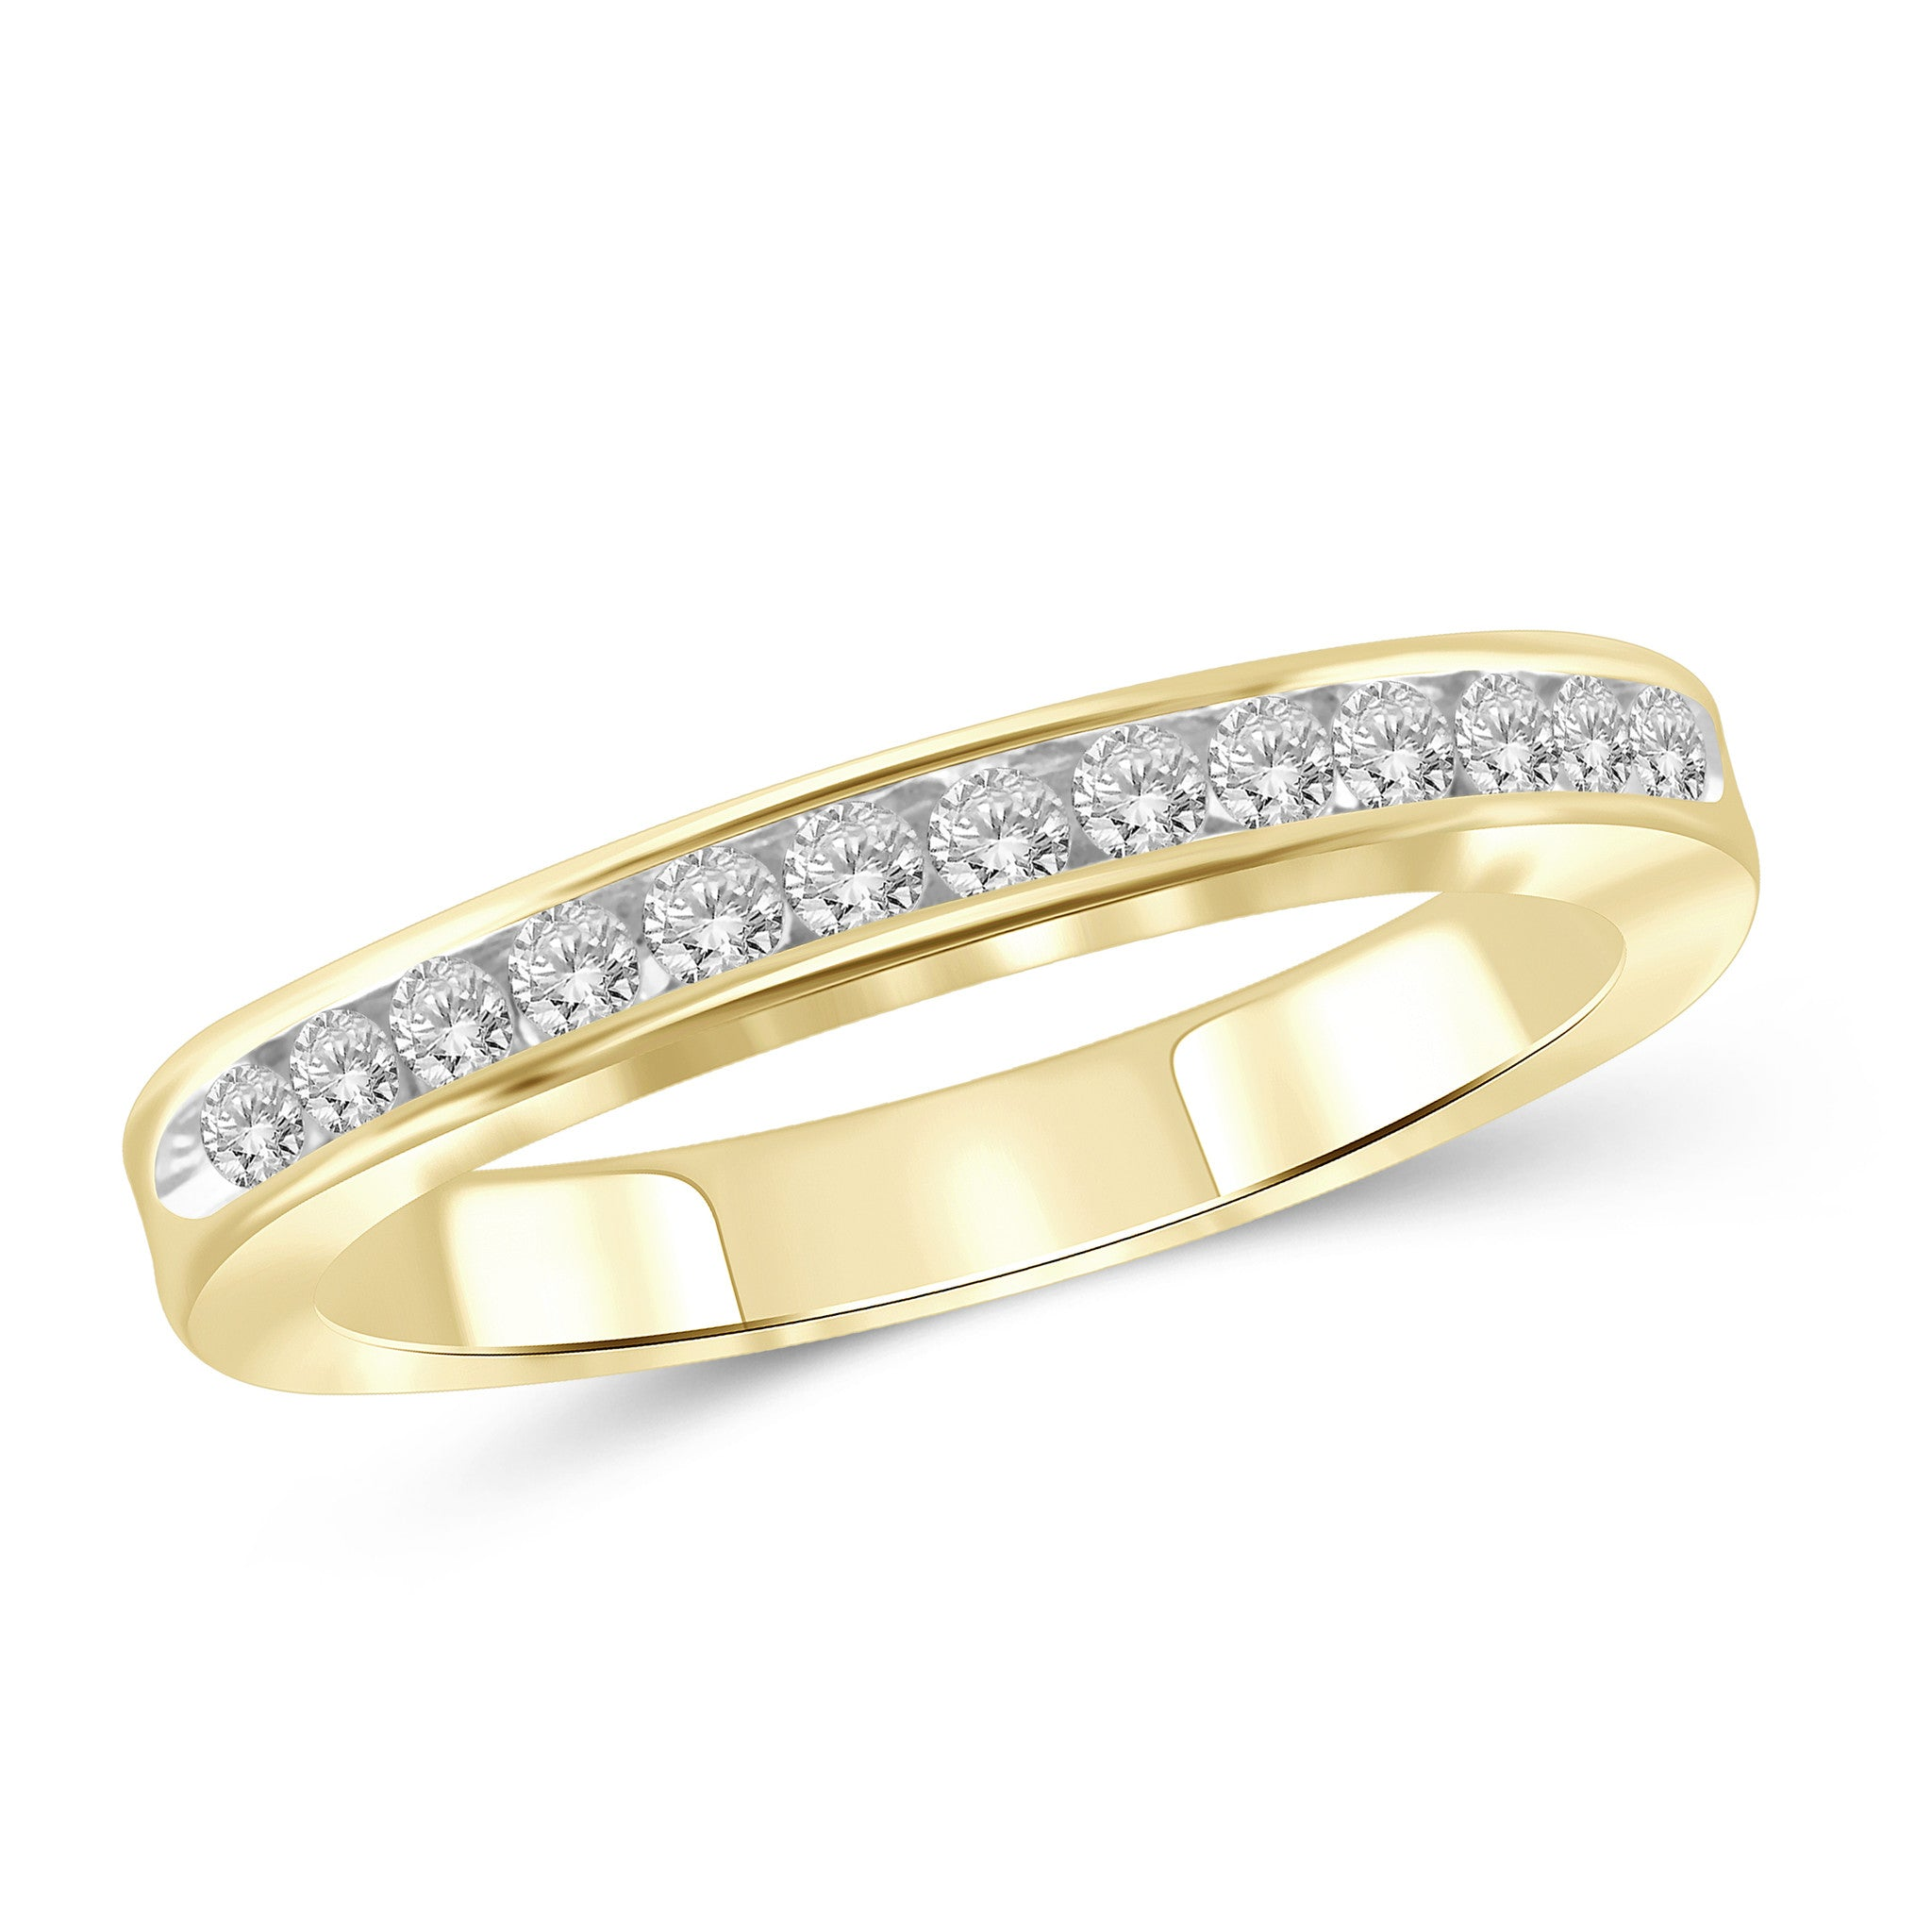 diamond rings ring women her for inspirations s beautiful female wedding band gold yellow bands of